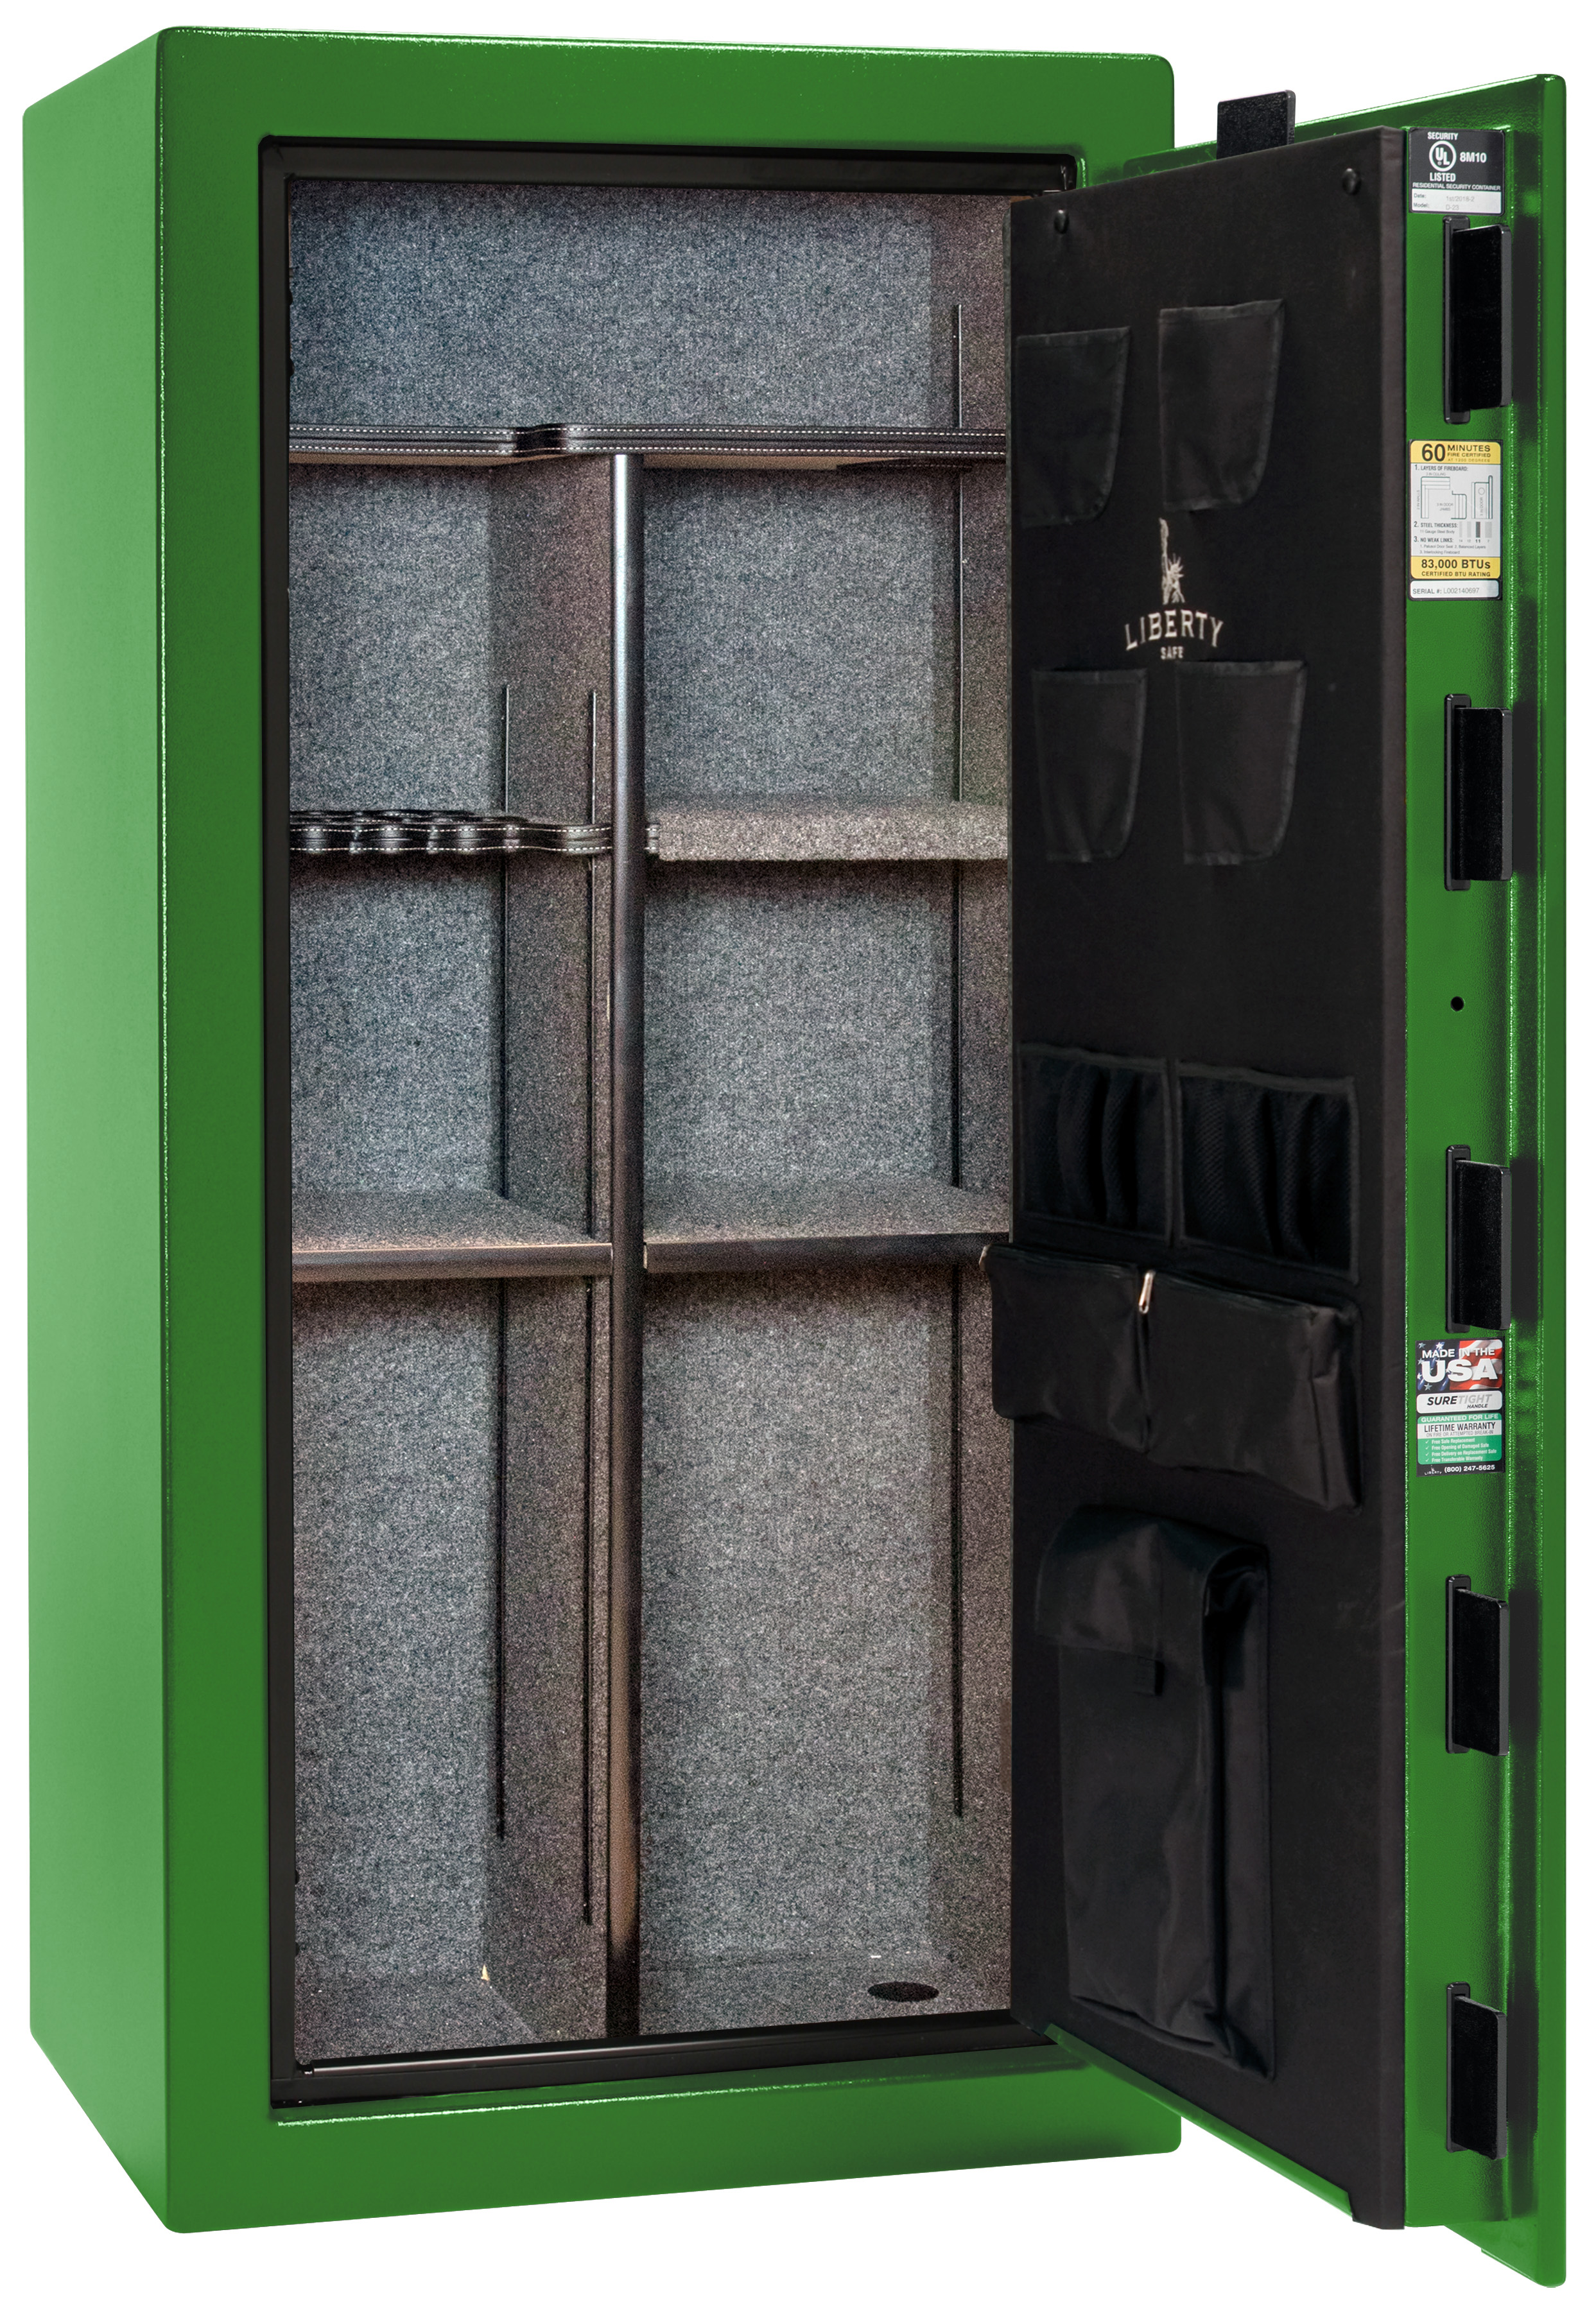 Photo of DG23-TGP Deluxe 23 John Deere Green Safe